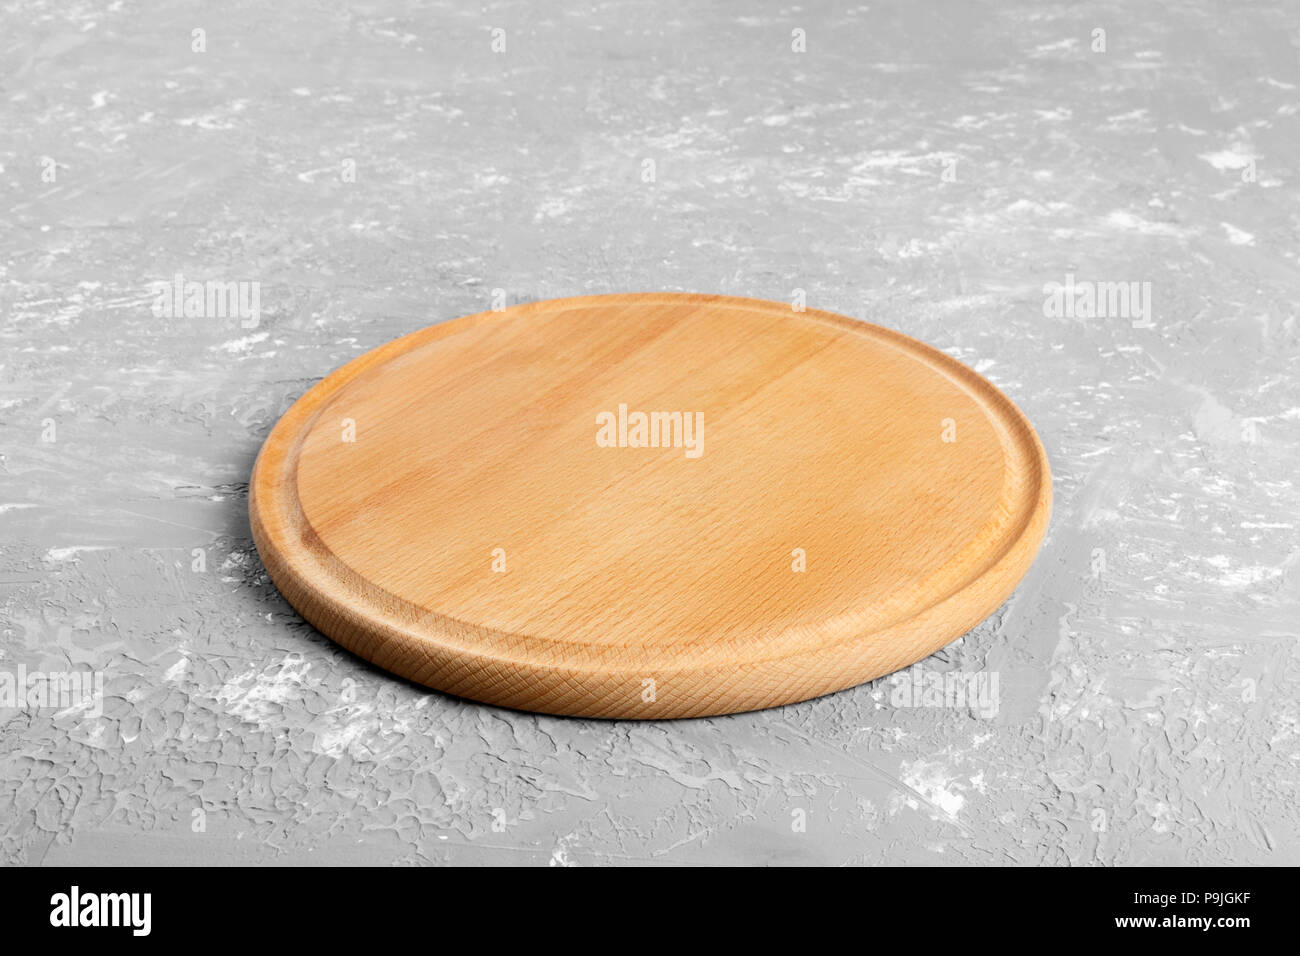 Empty Round Wooden Plate On Textured Table Wood Plate For Food Or Vegetable Serving To Customers Stock Photo Alamy